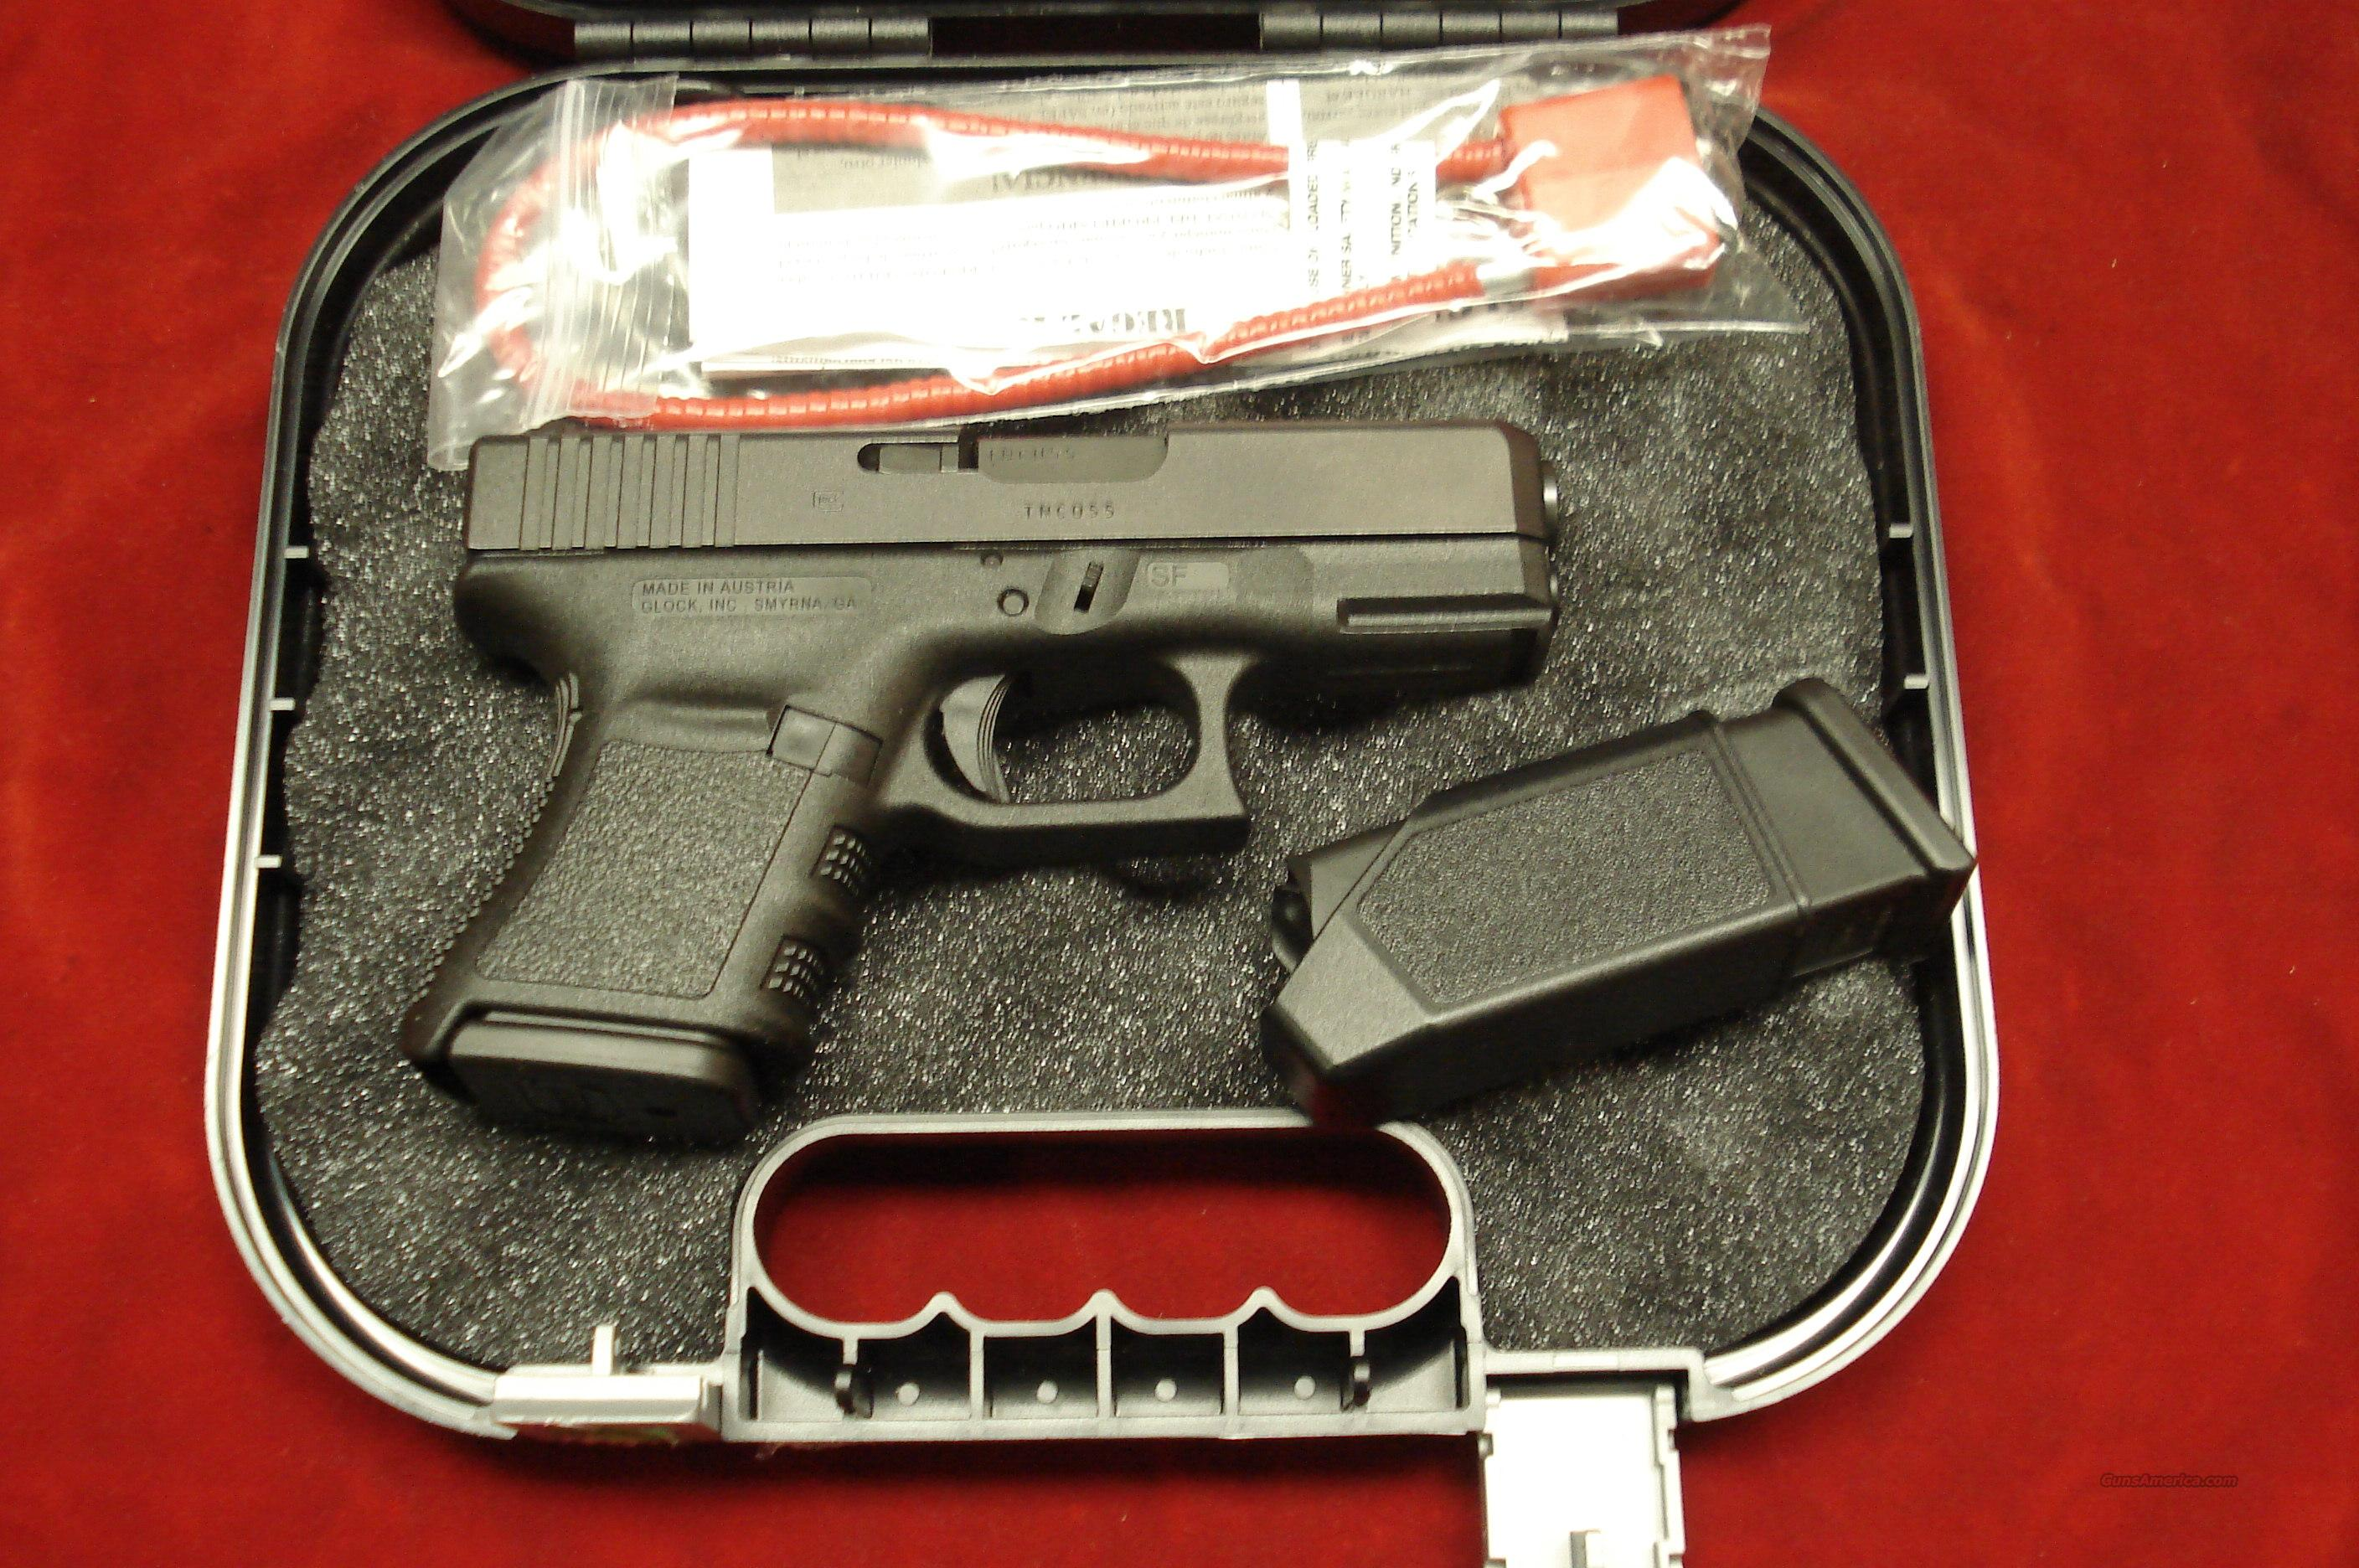 GLOCK MODEL 29SF GEN3 10MM  NEW  Guns > Pistols > Glock Pistols > 29/30/36